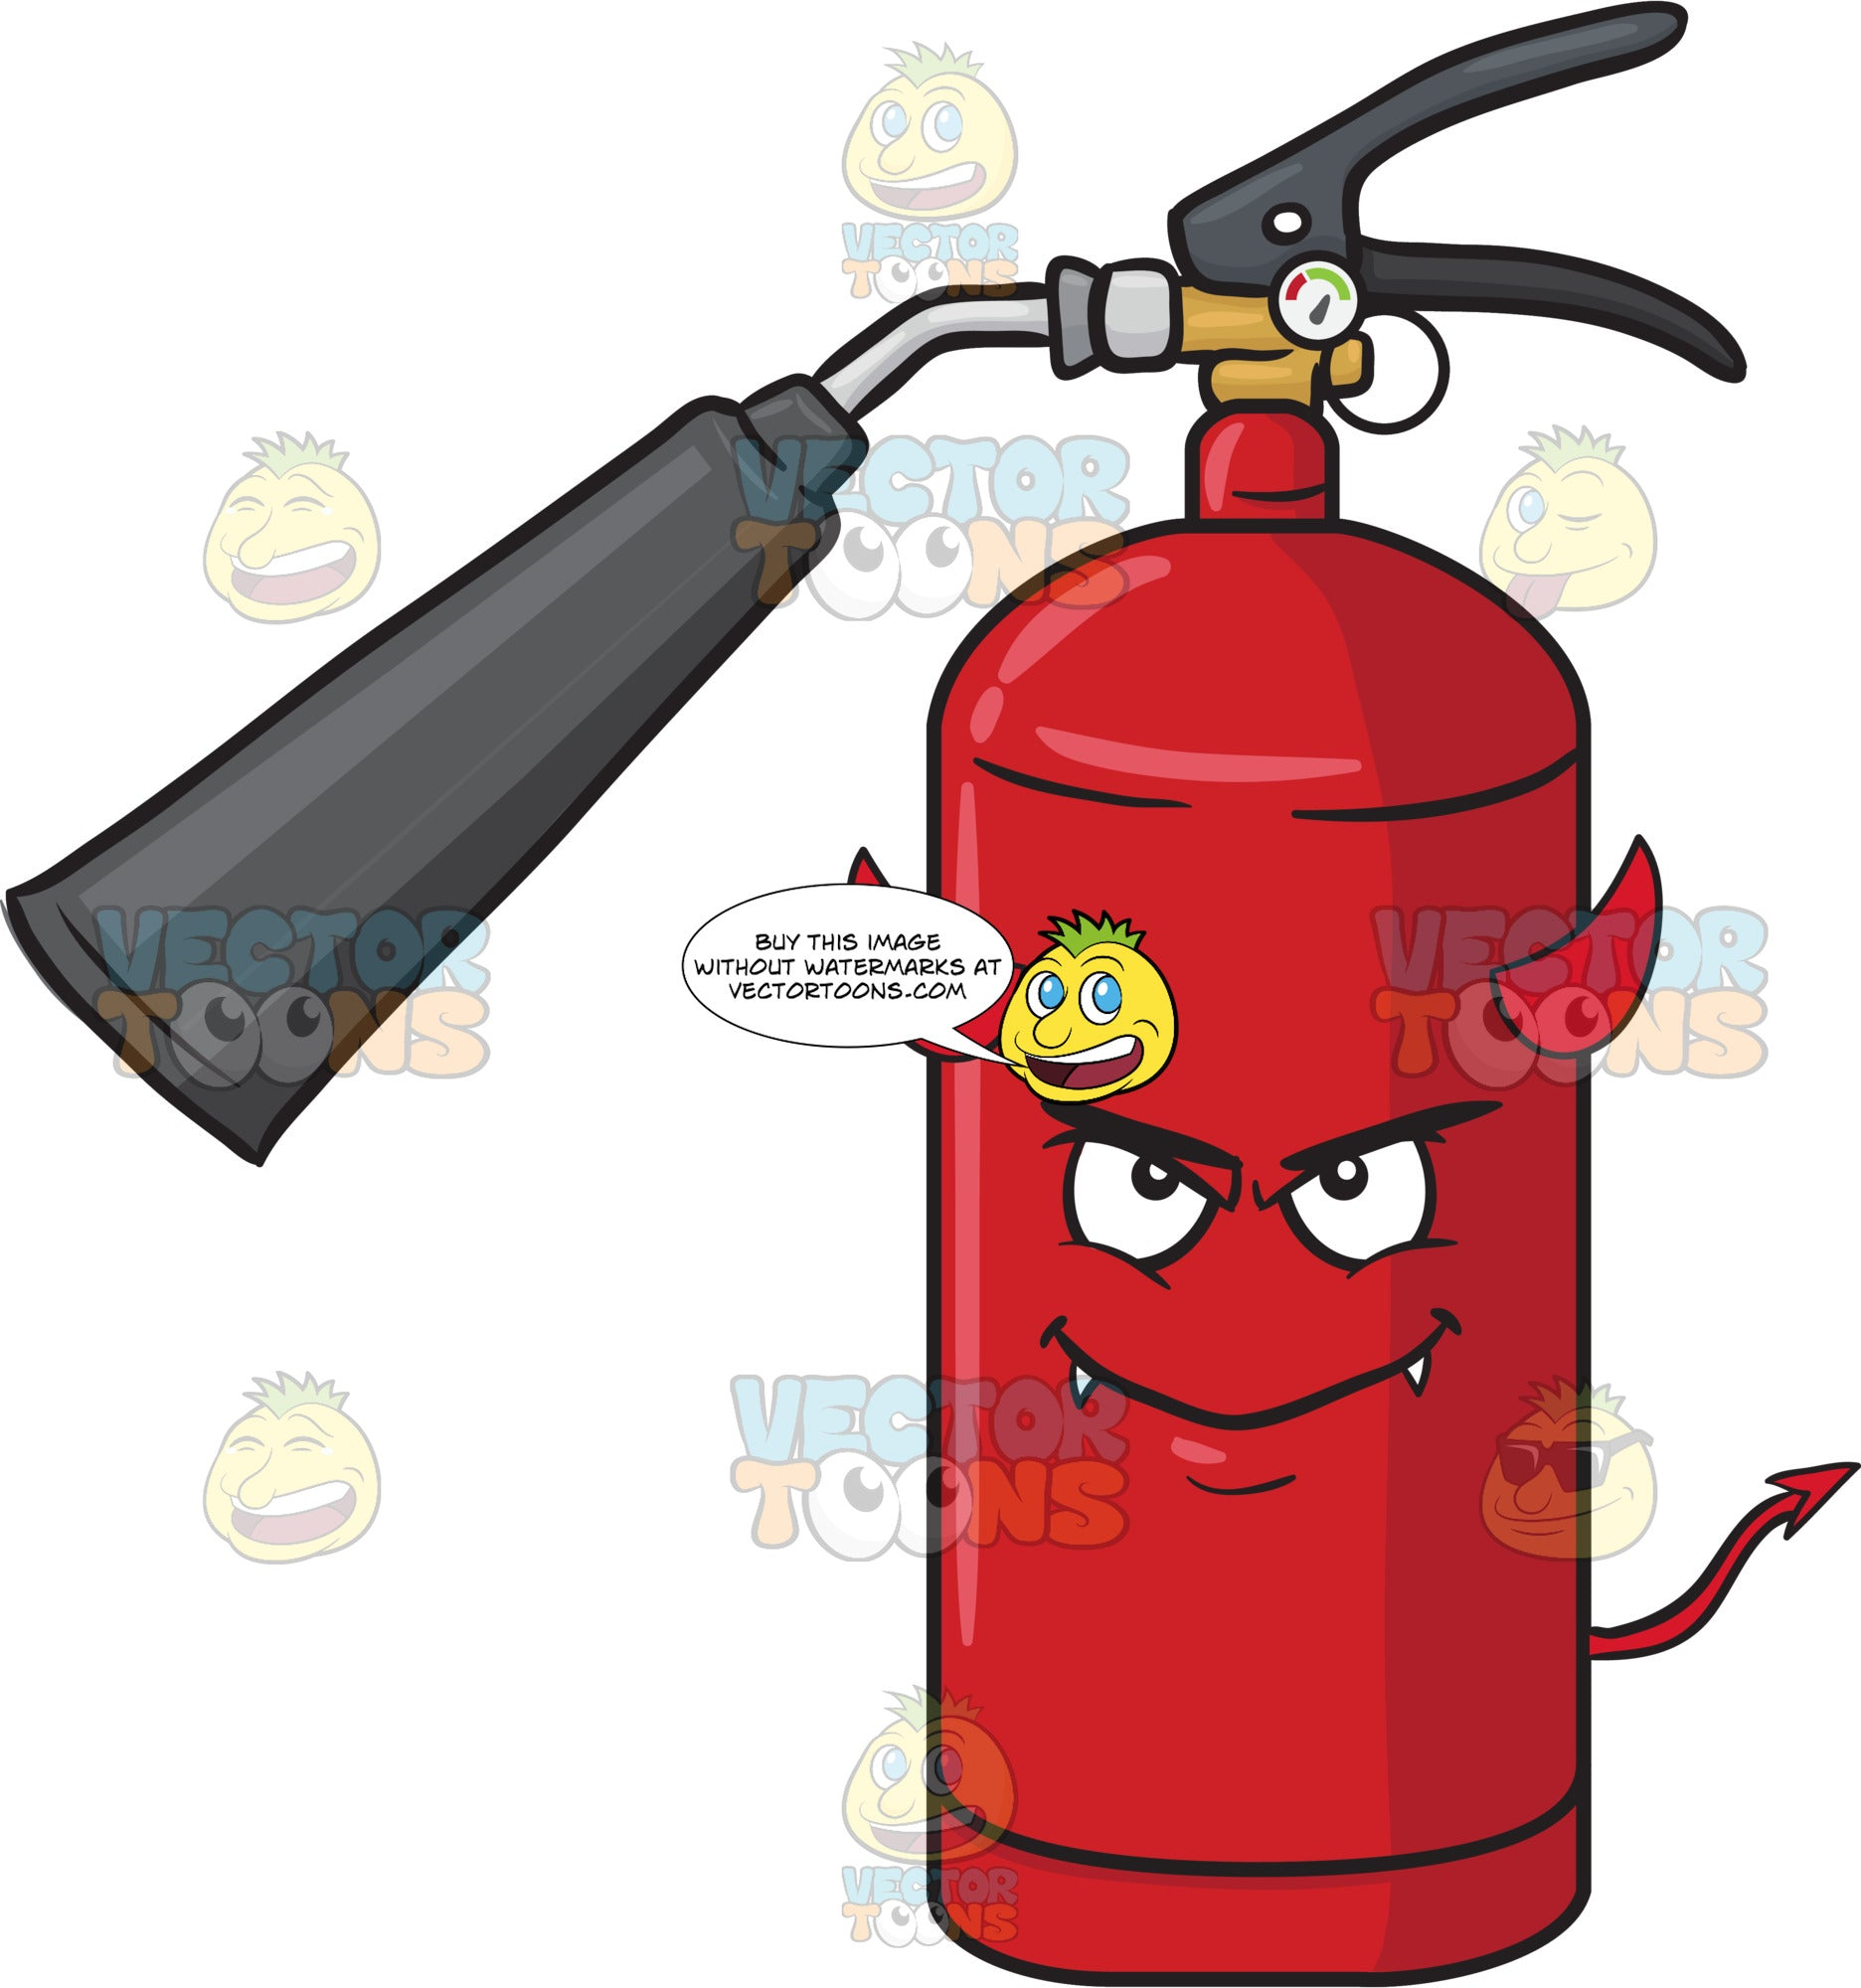 Fire Extinguisher Smiling Mischievously With Fangs Horns And Tail Emoji